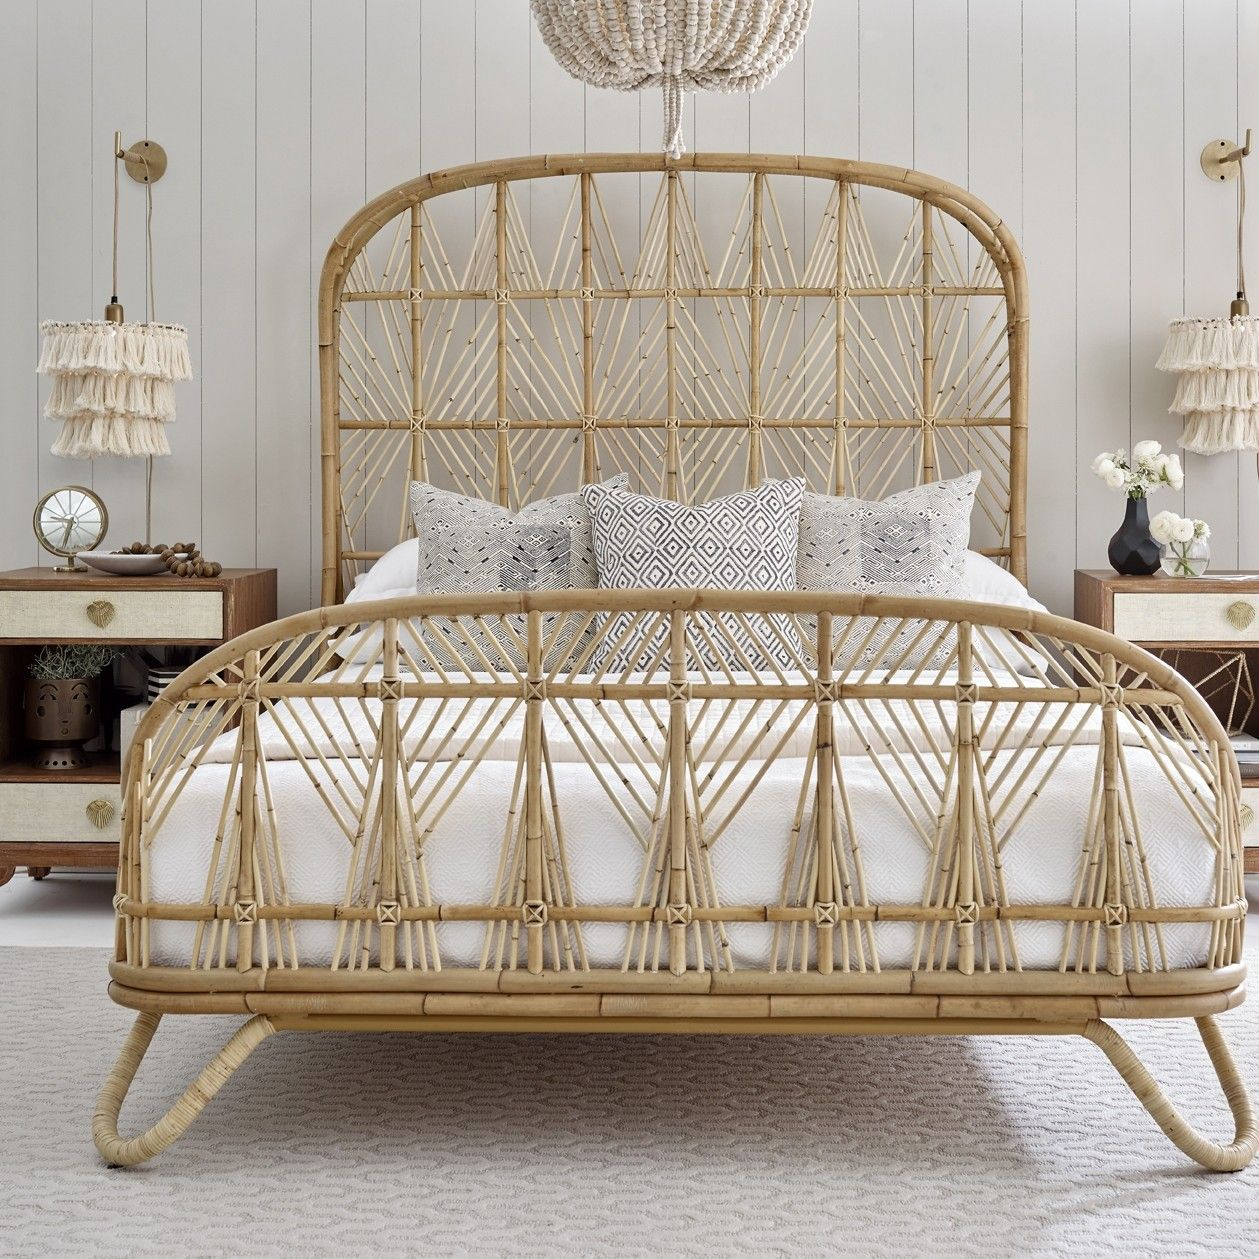 Your Bohemian Dream Justina Blakeney S Ara Bed Rattan Platform